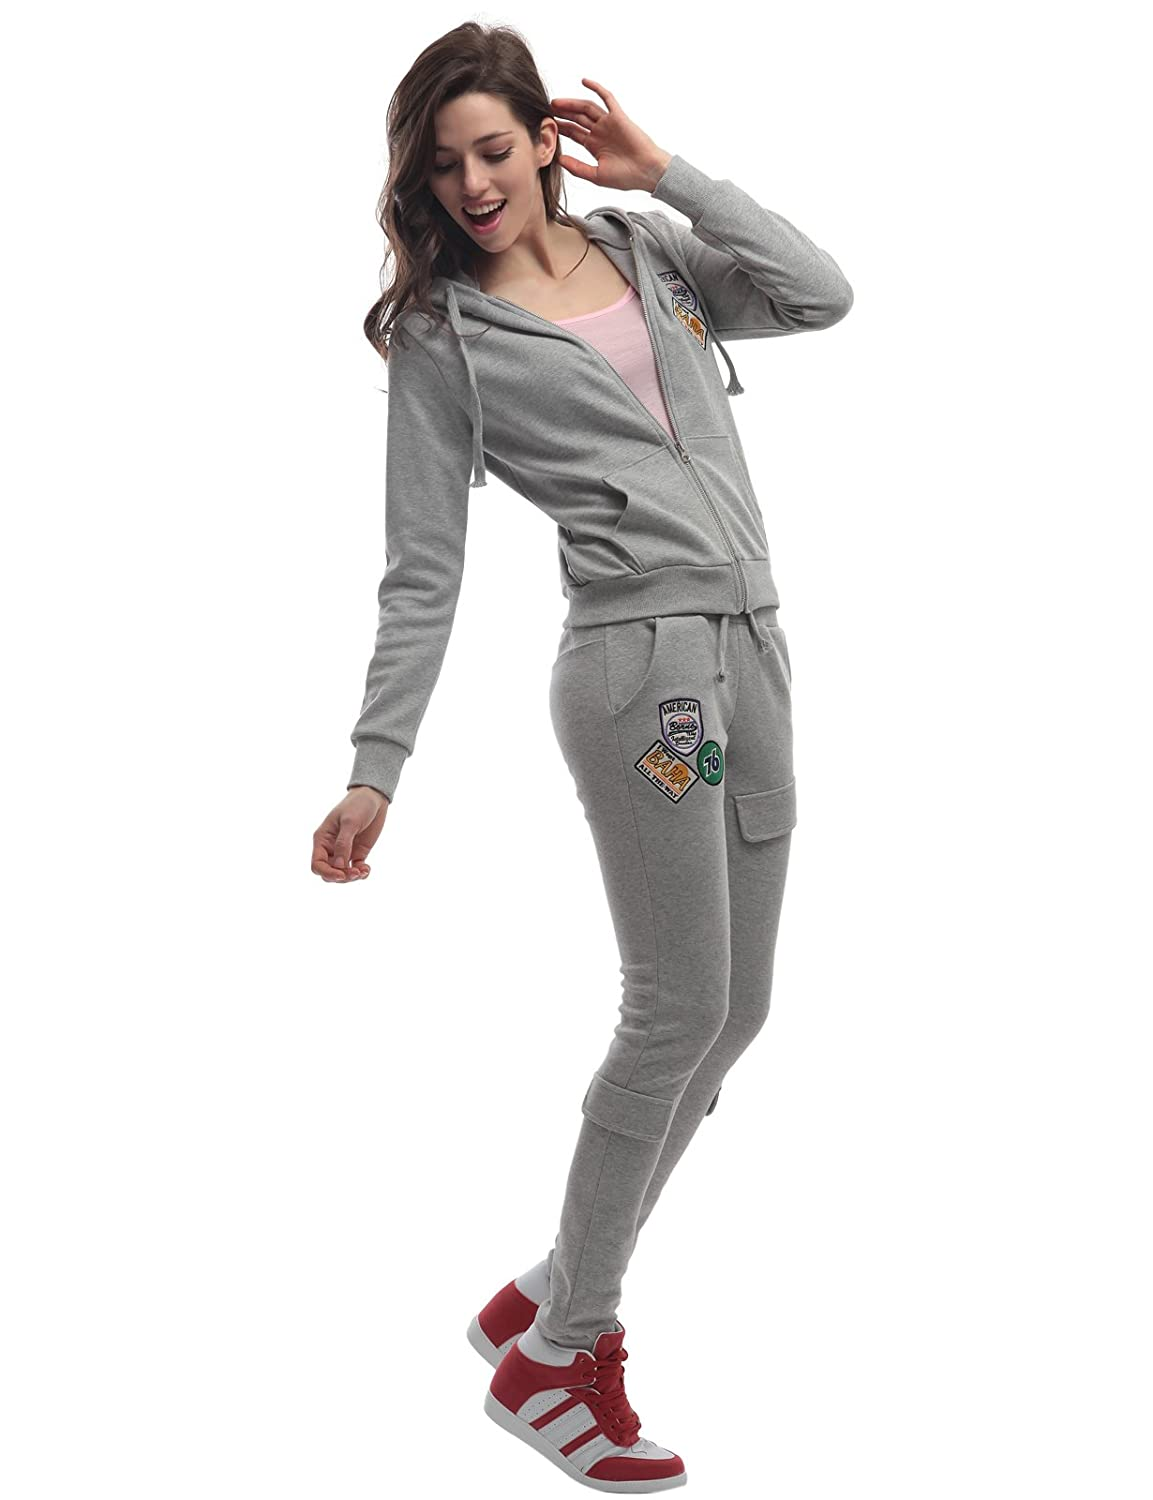 Doublju Womens Hood Sweatshirt & Pants Set with Point Patches